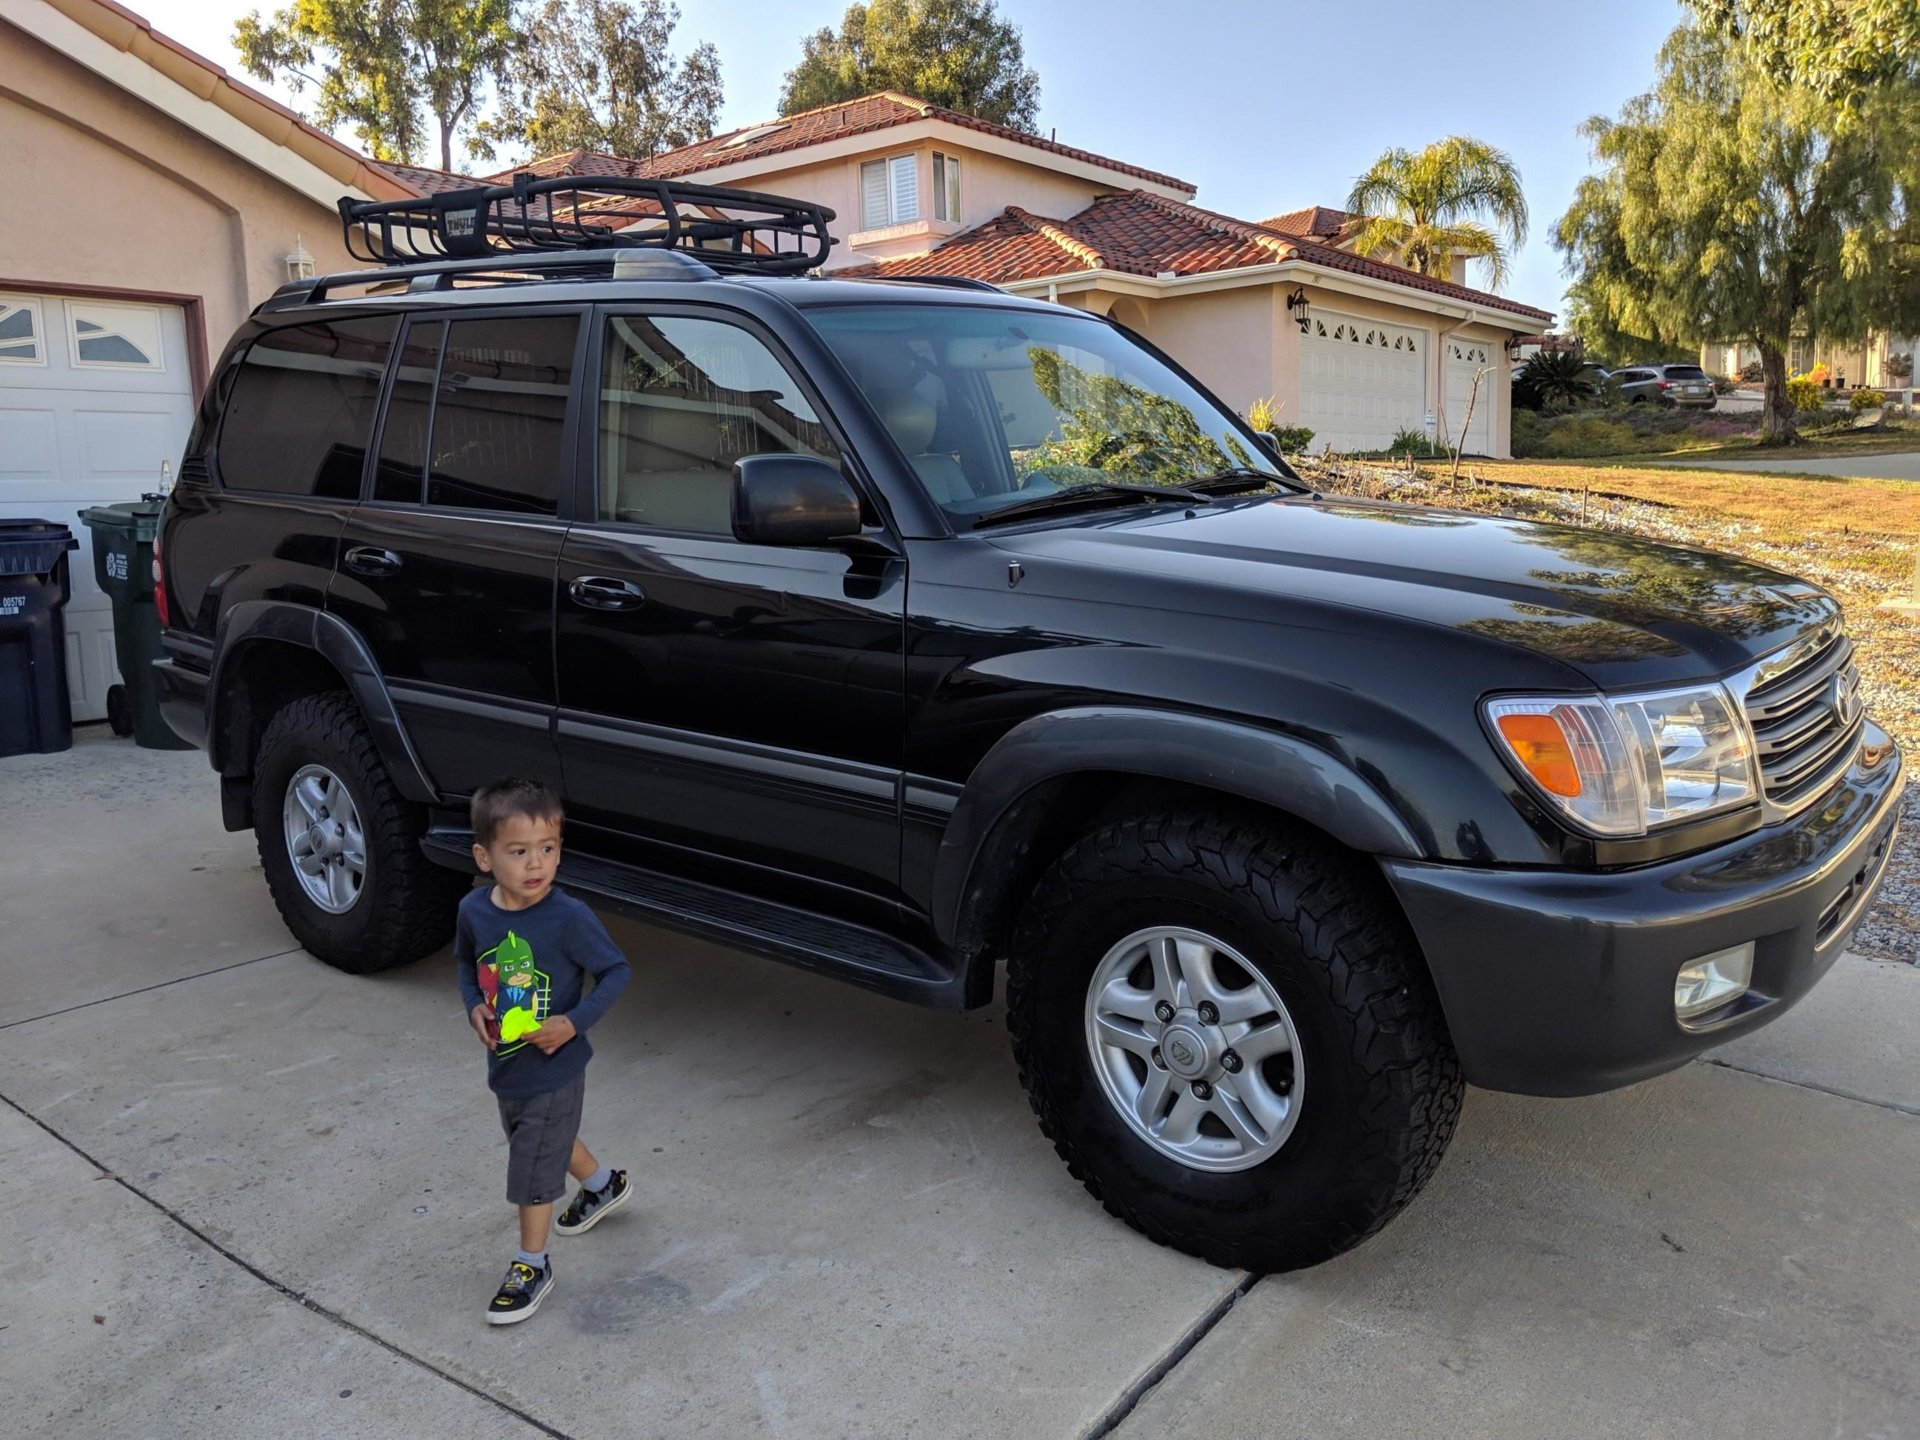 2010 Sequoia Limited Build and Discussion | IH8MUD Forum